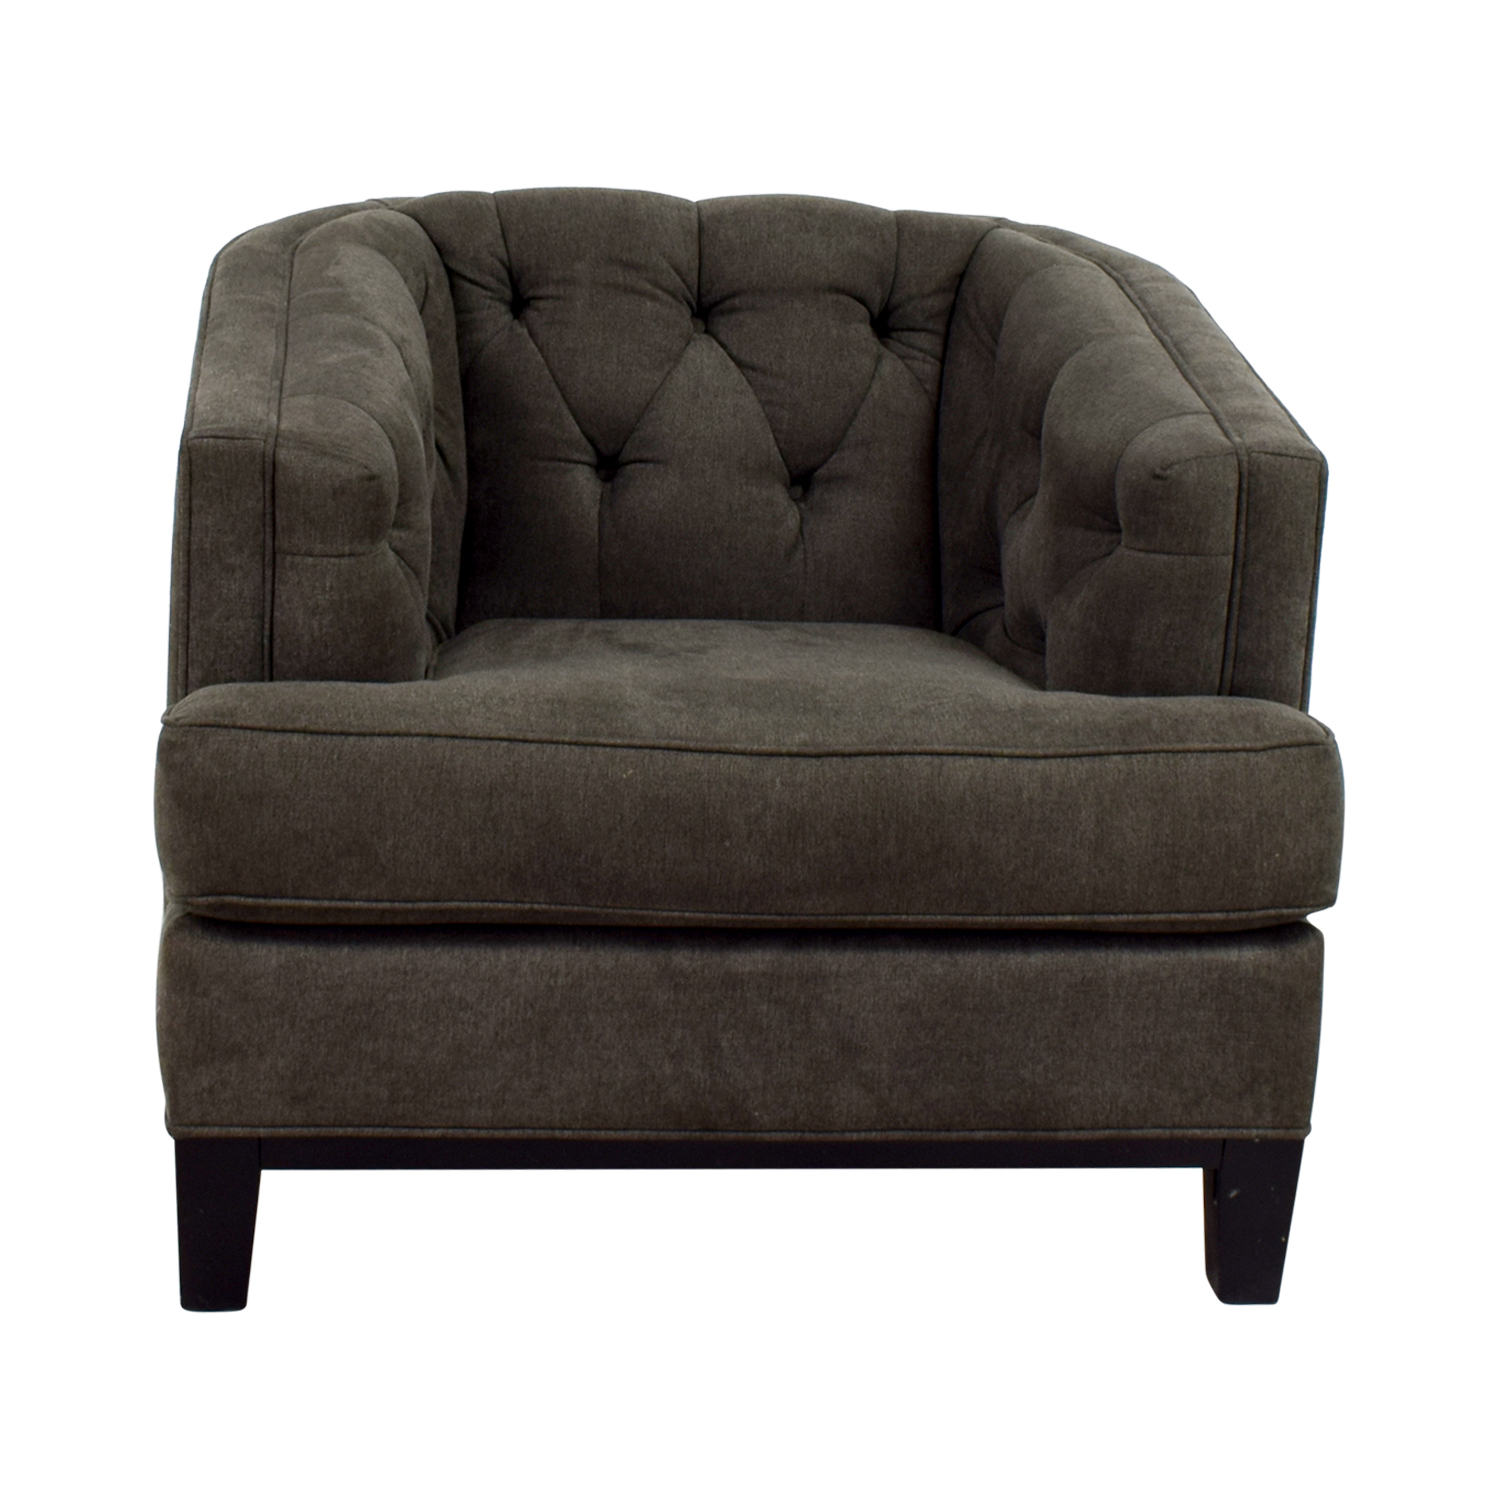 Rooms To Go Rooms To Go Grey Tufted Chair Grey